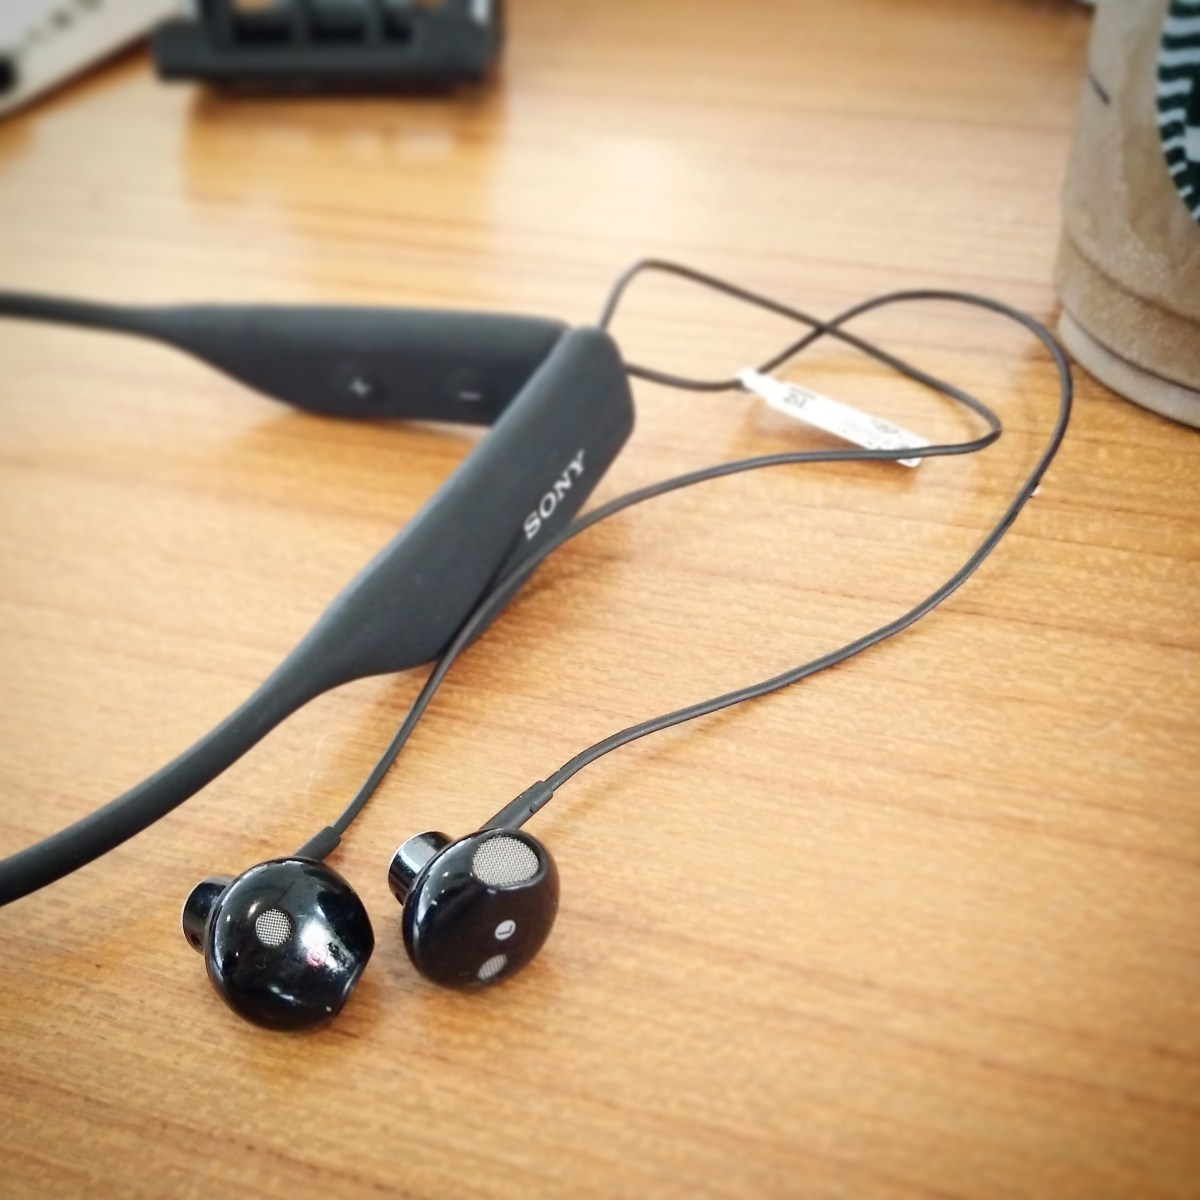 Sony SBH70 Bluetooth Headset: Review